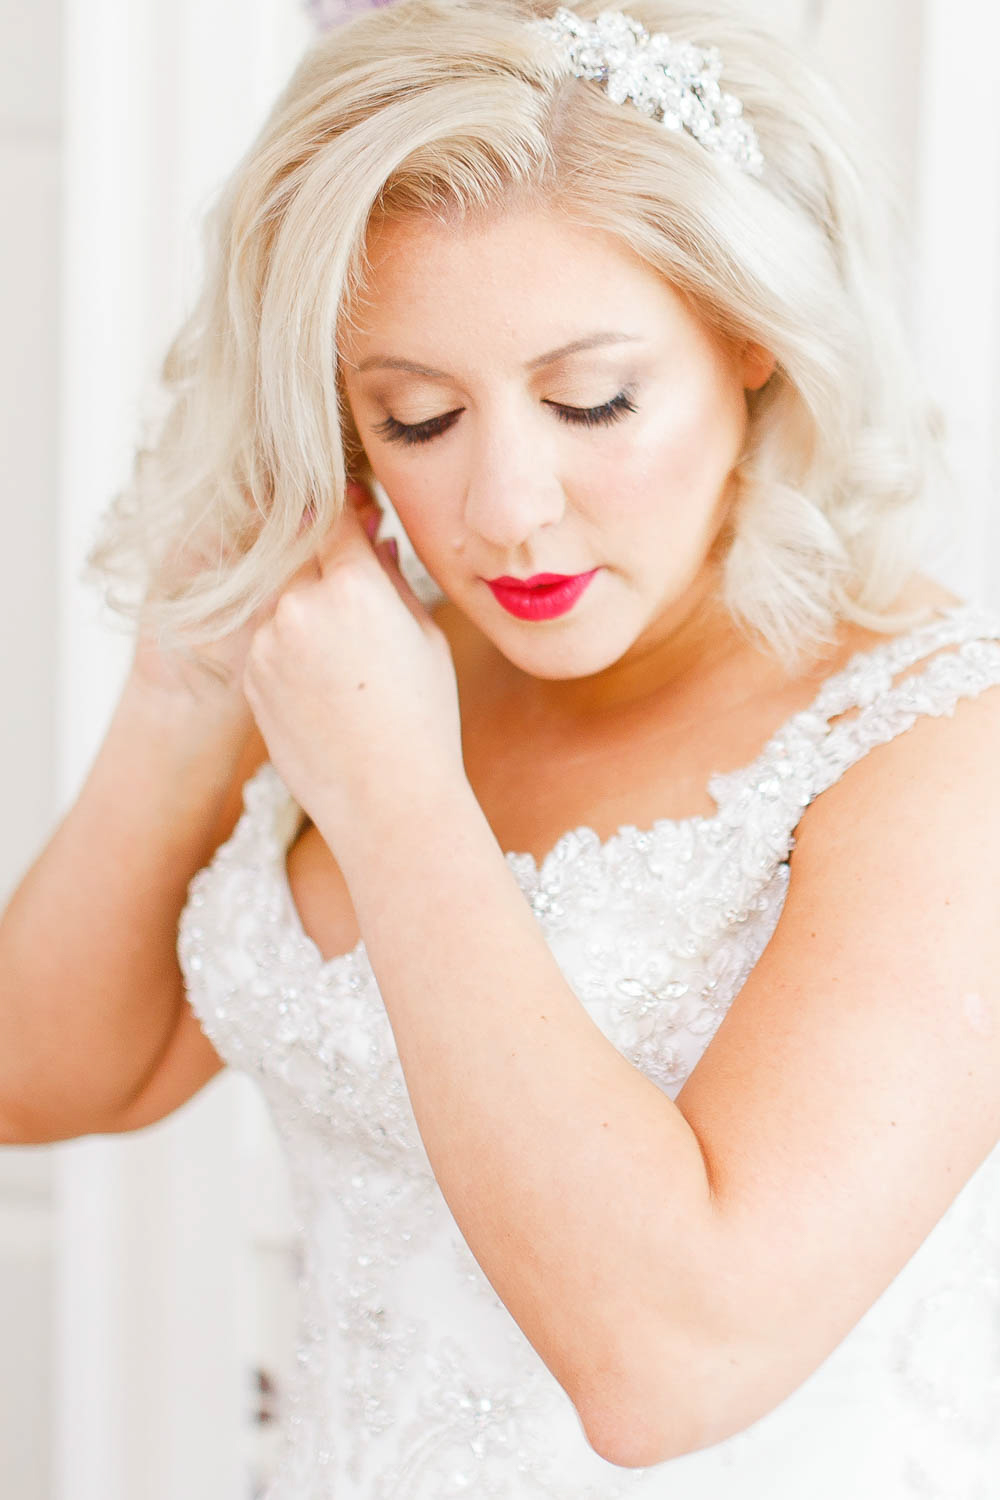 f869c22d077d Bridal Preparations | Red Lipstick | White Stag Wedding Photography